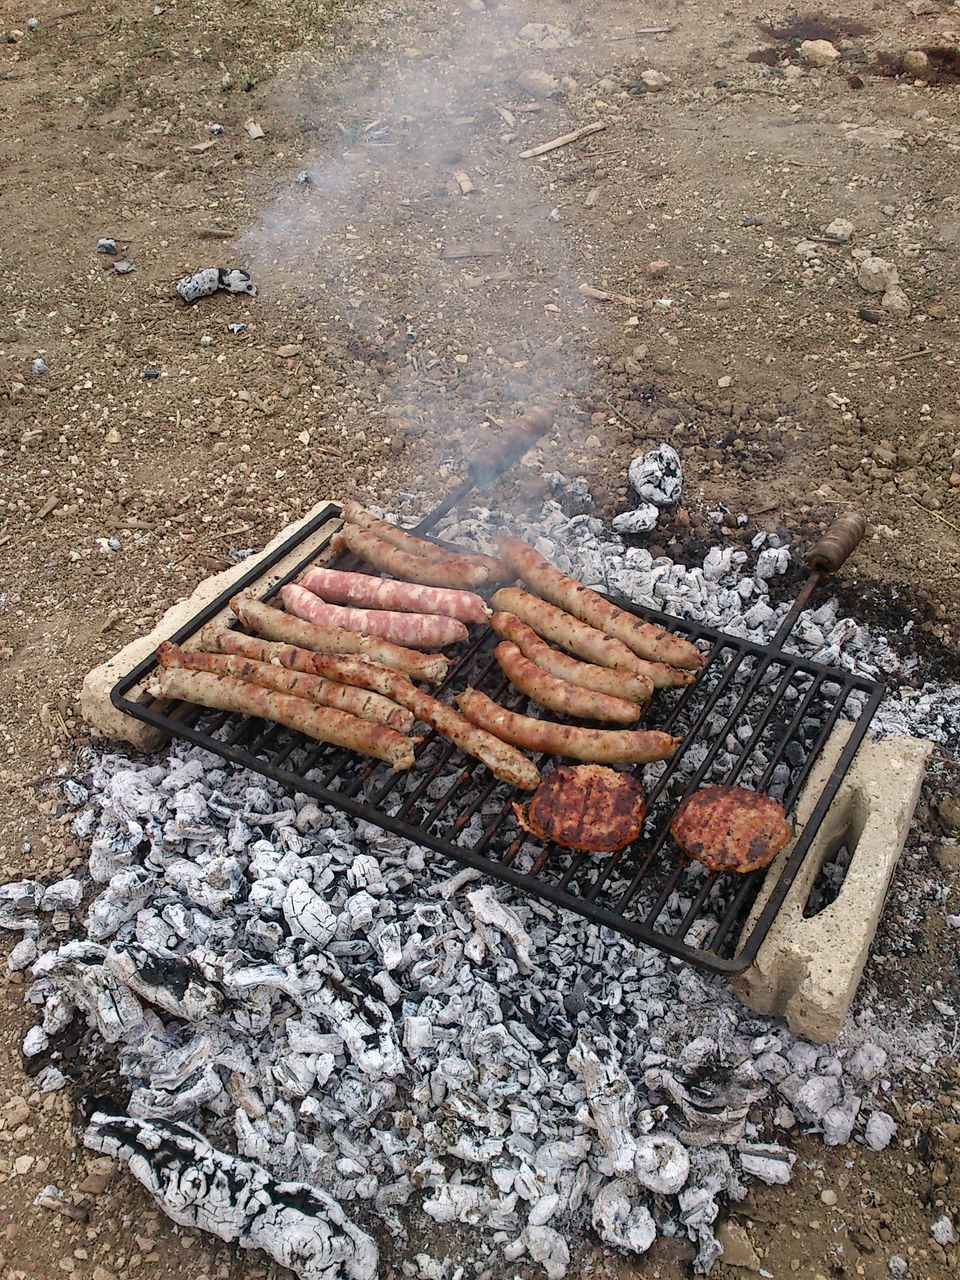 High Angle View Of Sausages On Barbeque